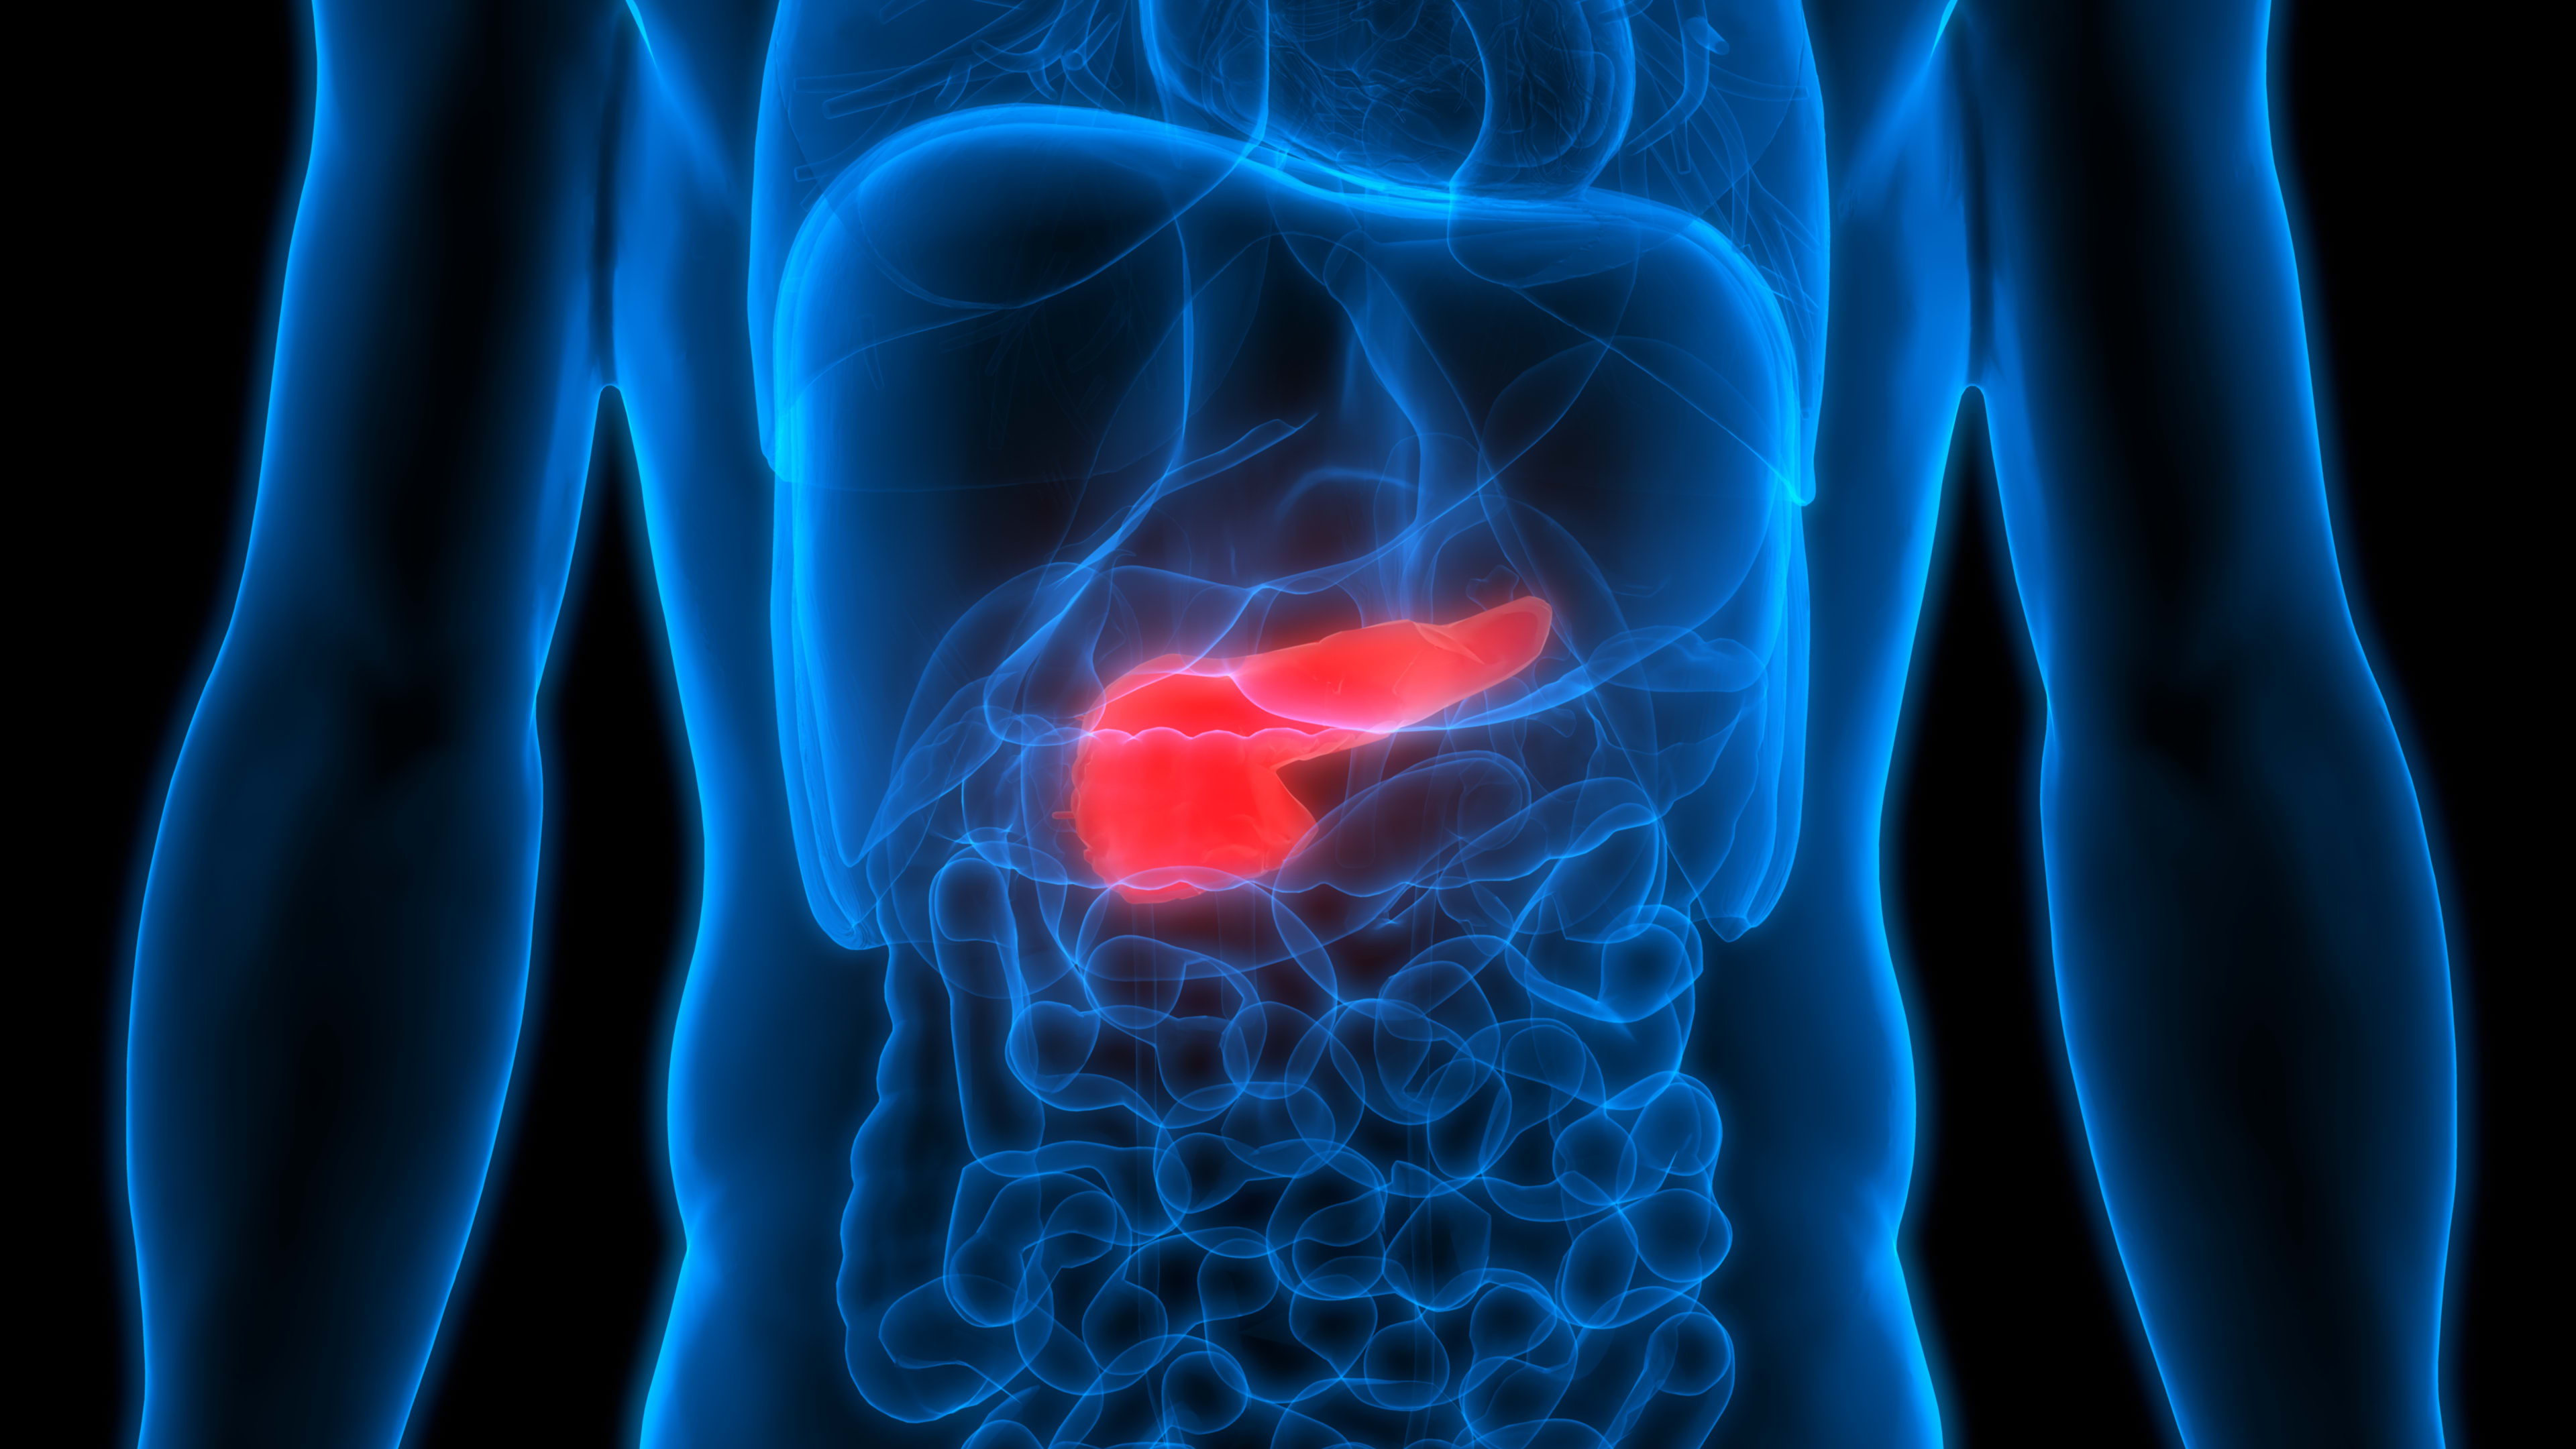 The pancreas is located in the abdomen.